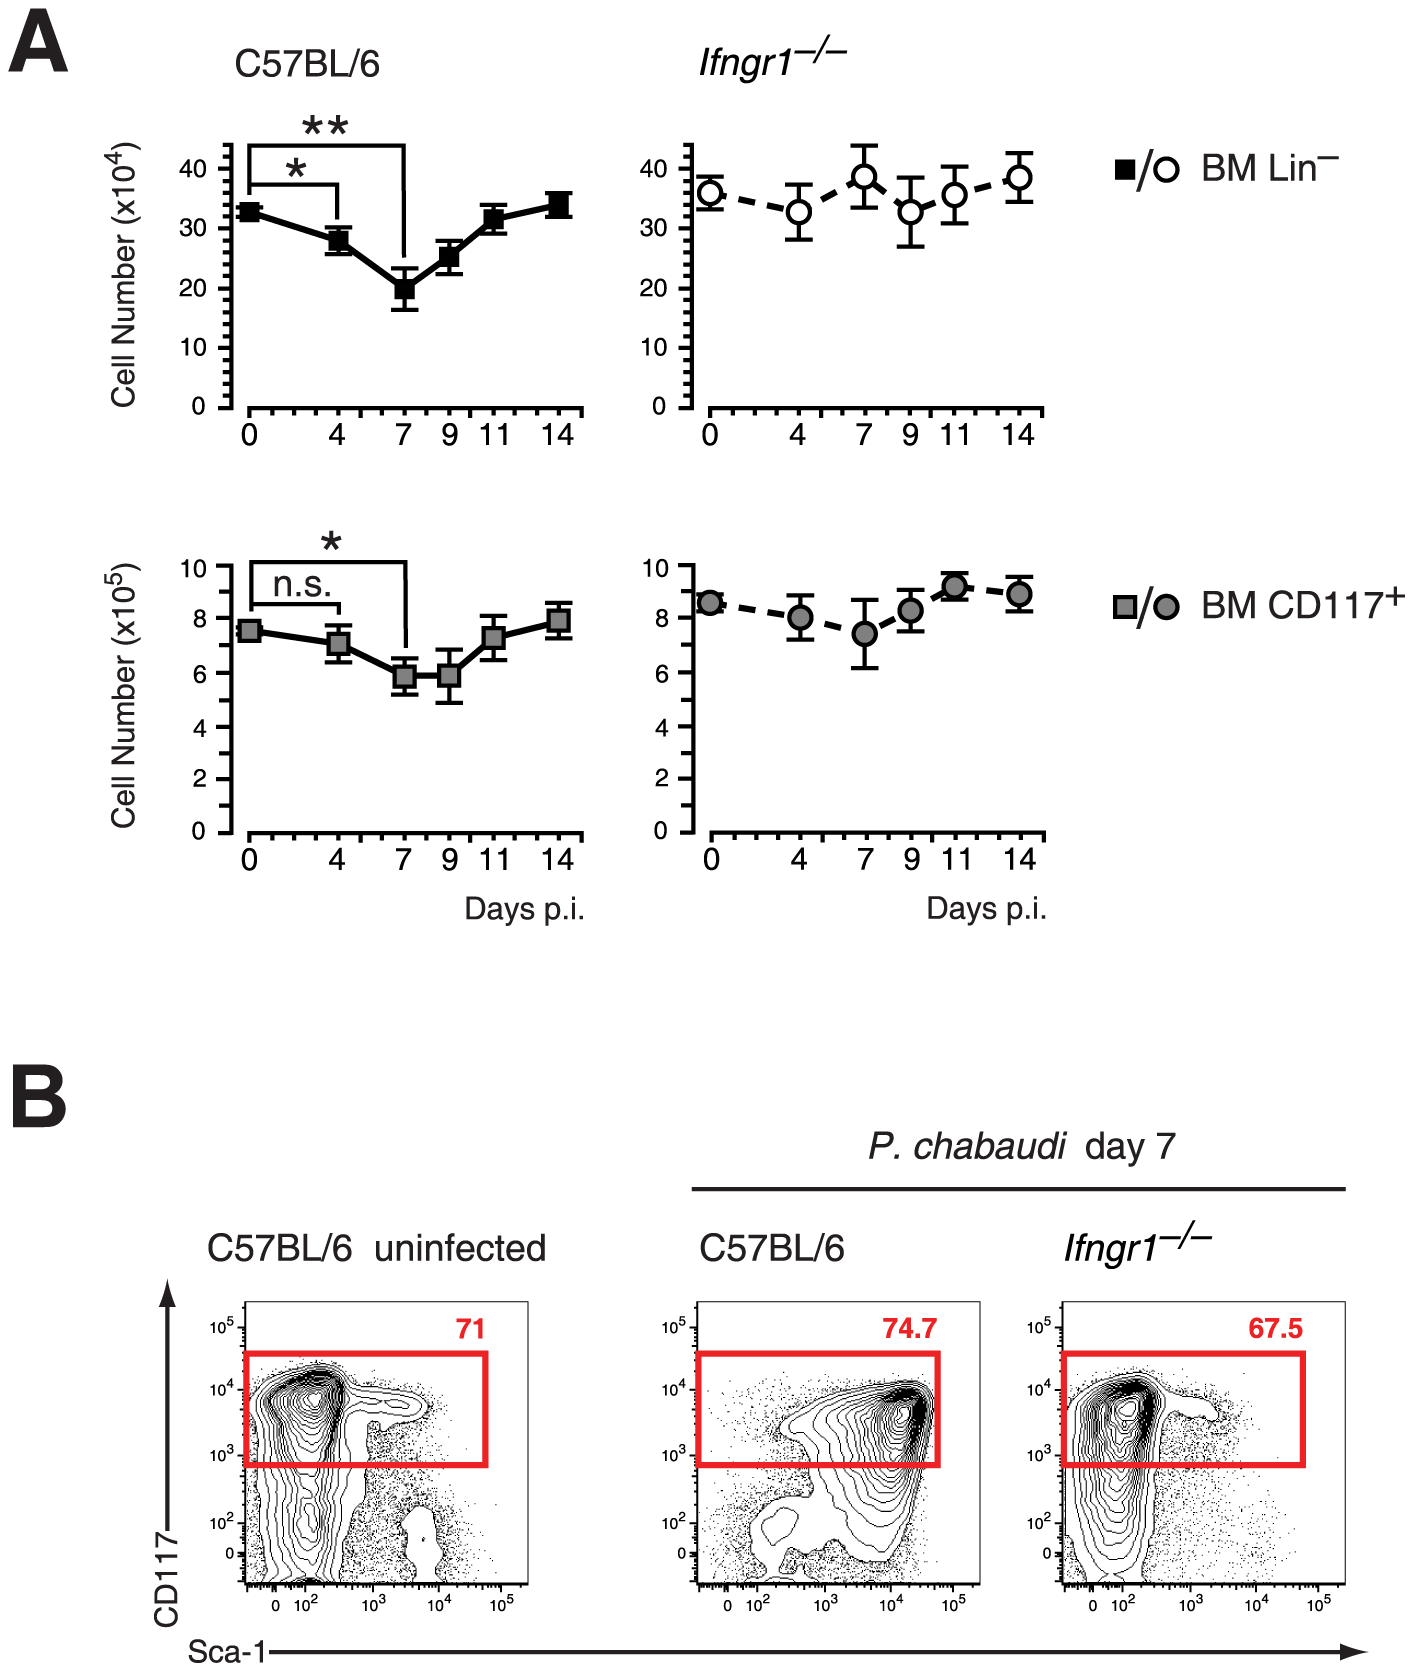 Contraction of lineage negative cell and Sca-1 upregulation in malaria are dependent on IFN-γ signaling.